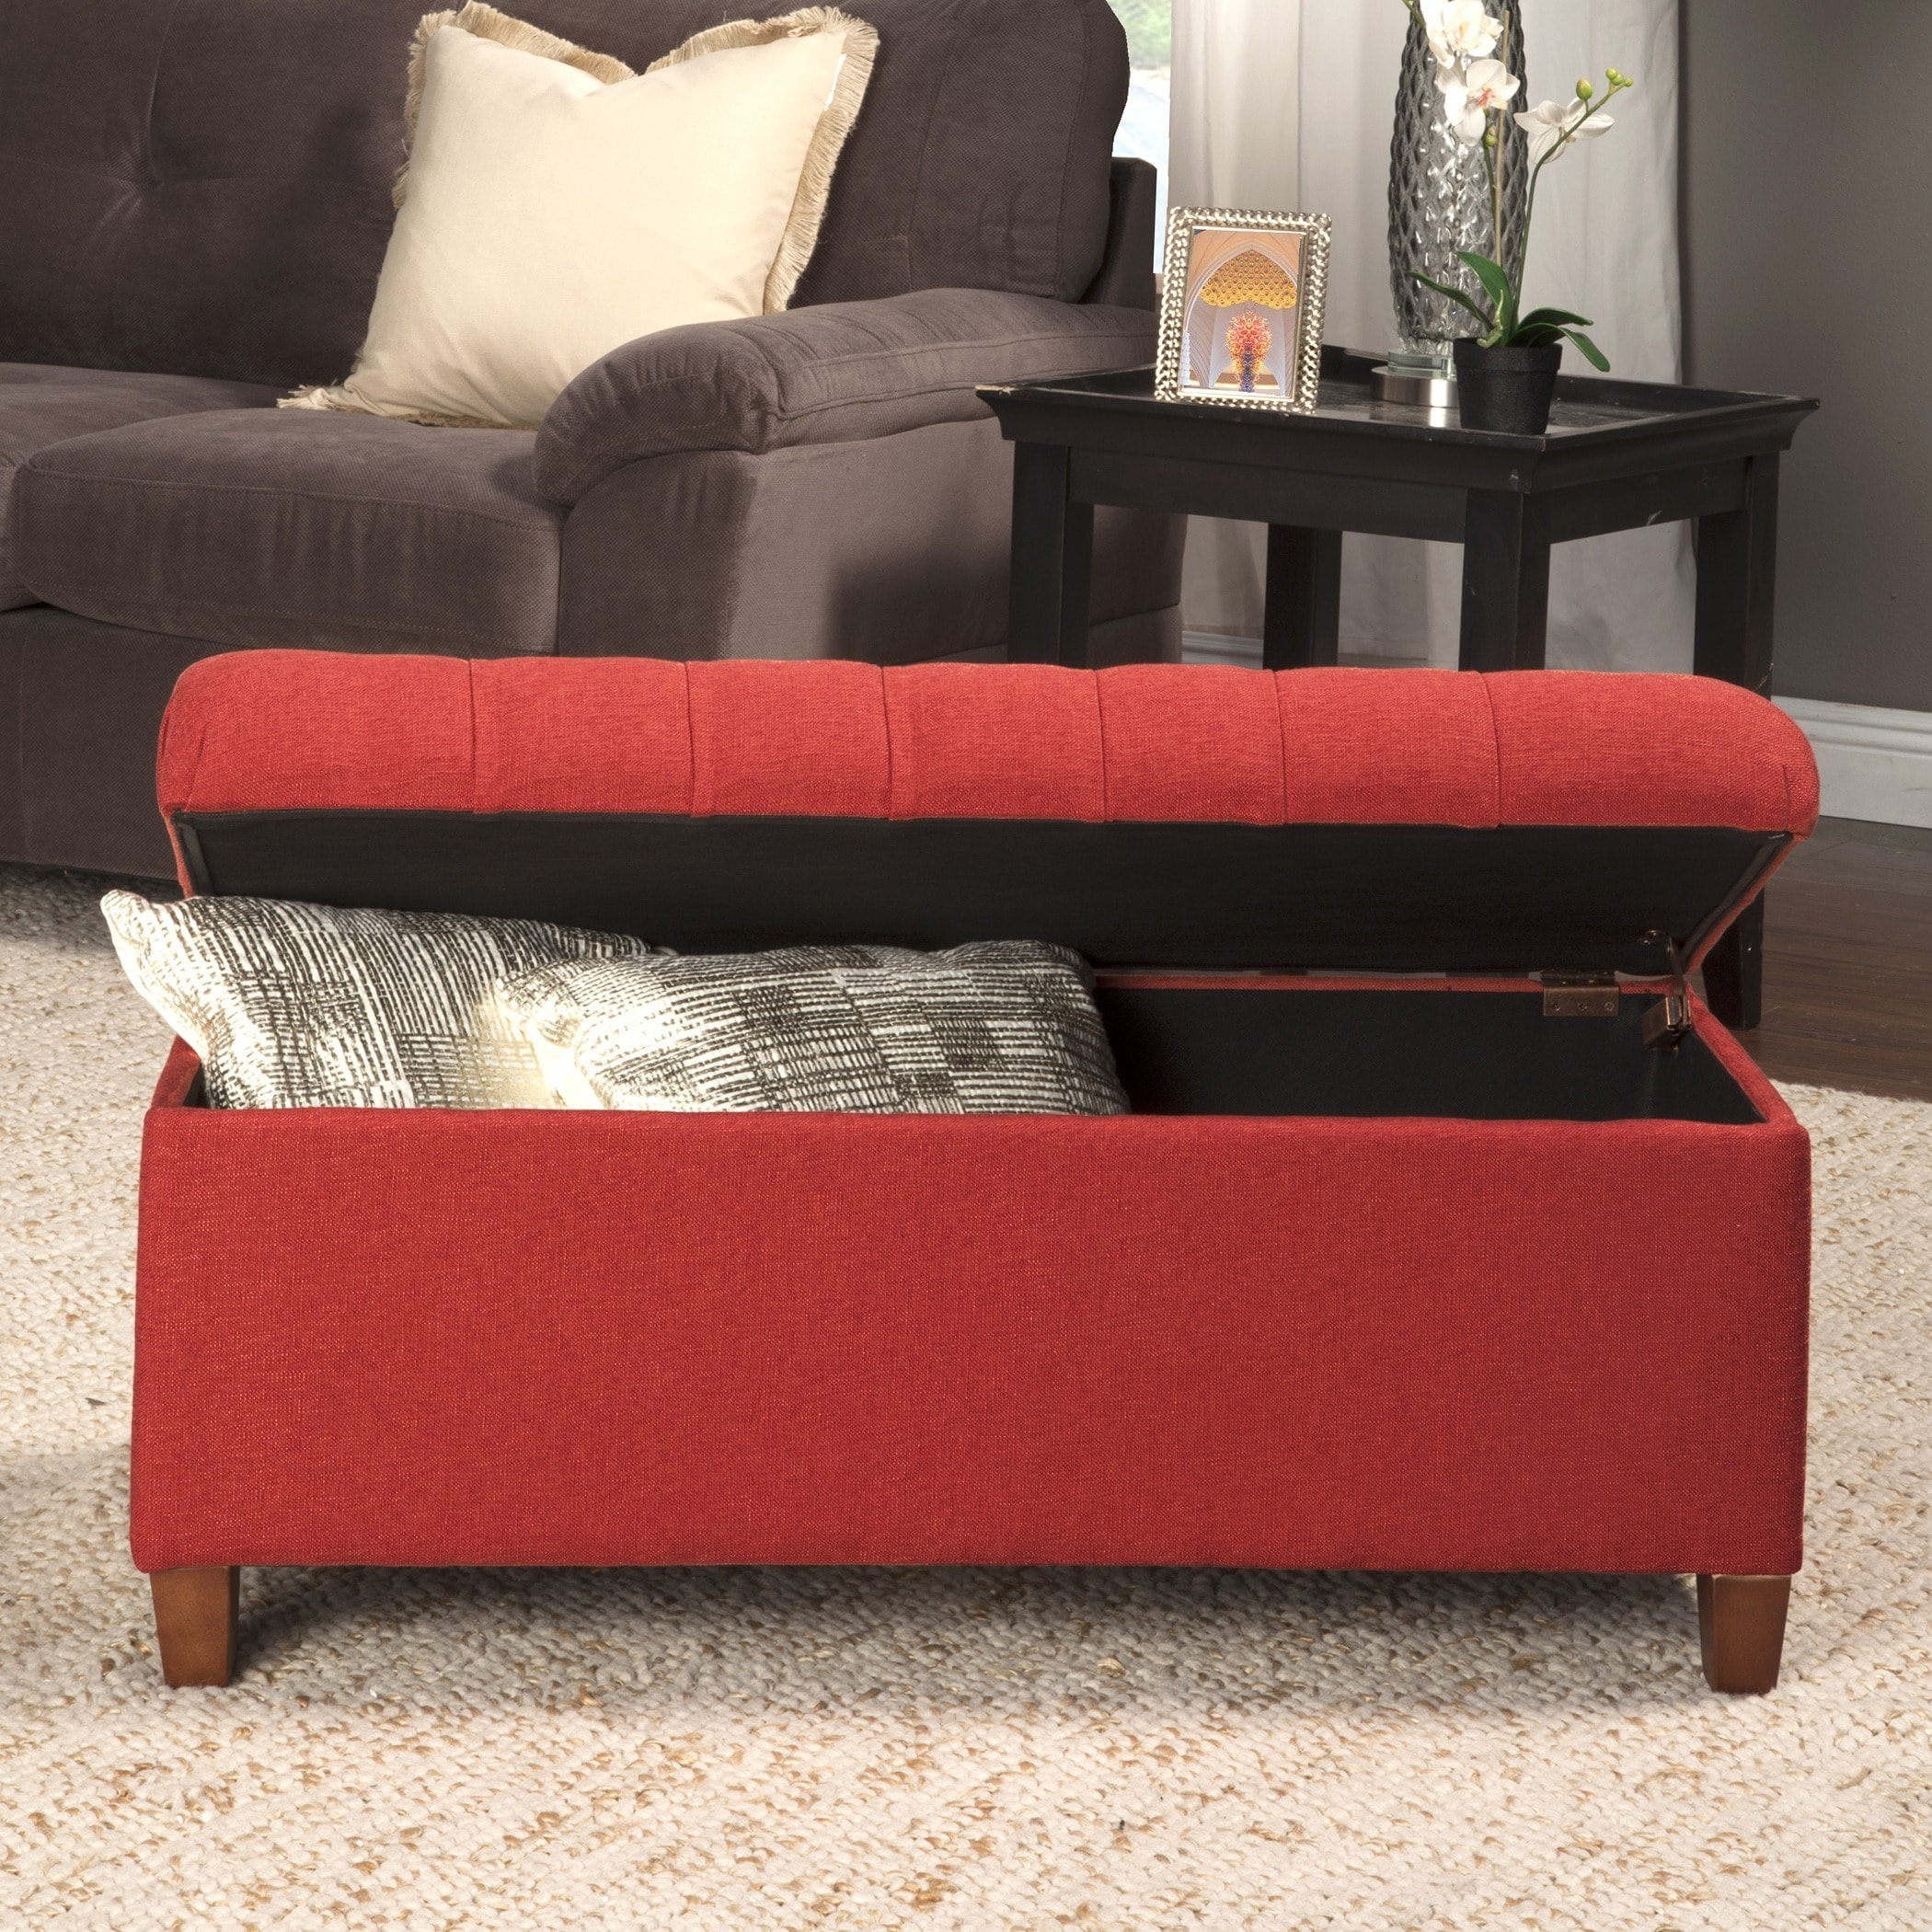 faux today storage burgundy garden free bench overstock product with hinge home leather red ottoman texture waxed shipping